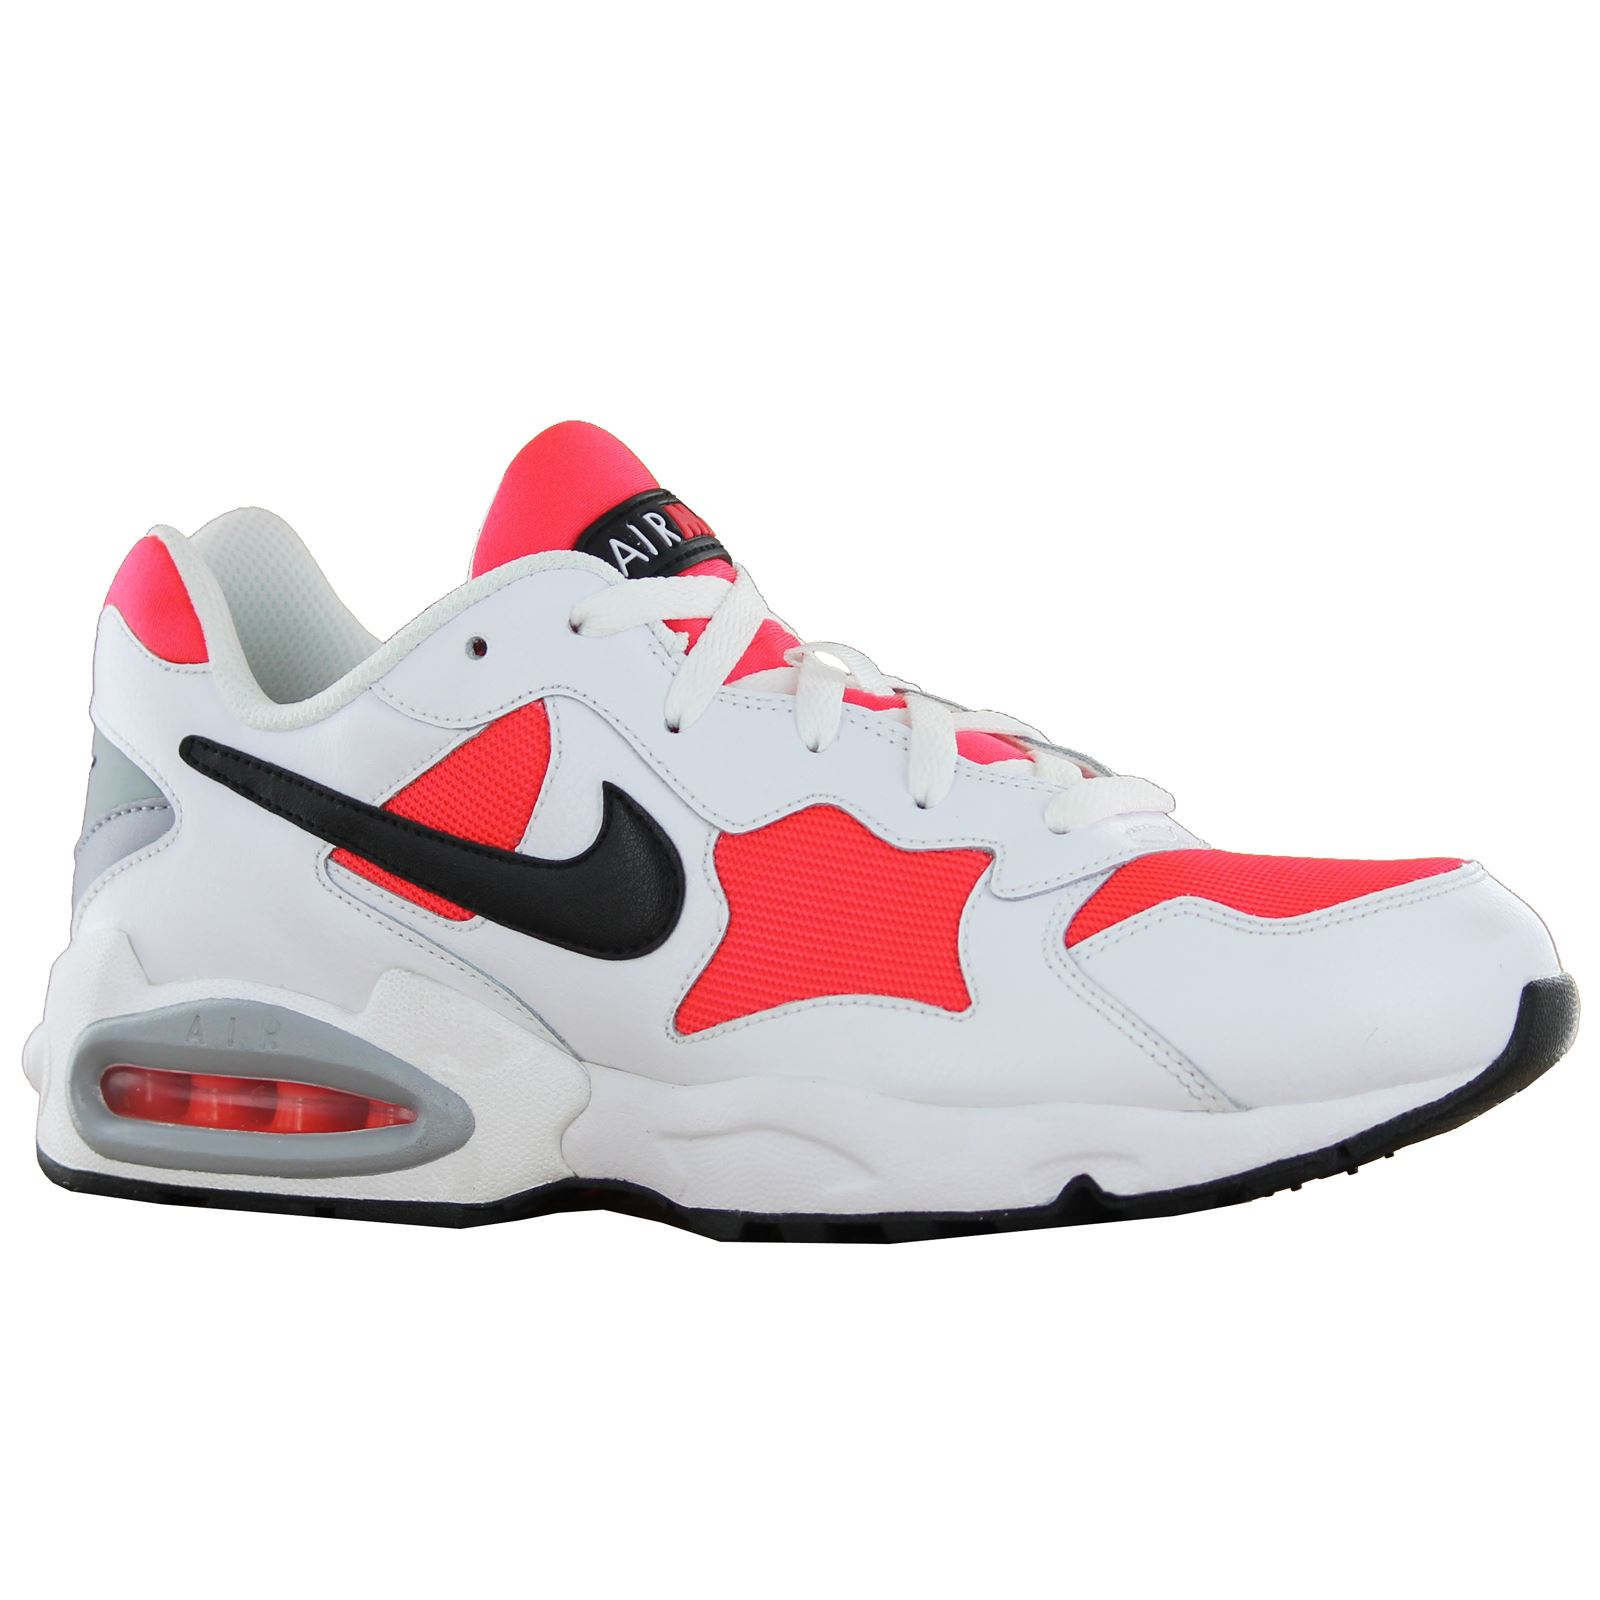 Nike Air Max Triax 94 White Red Mens Trainers Size 43 EU